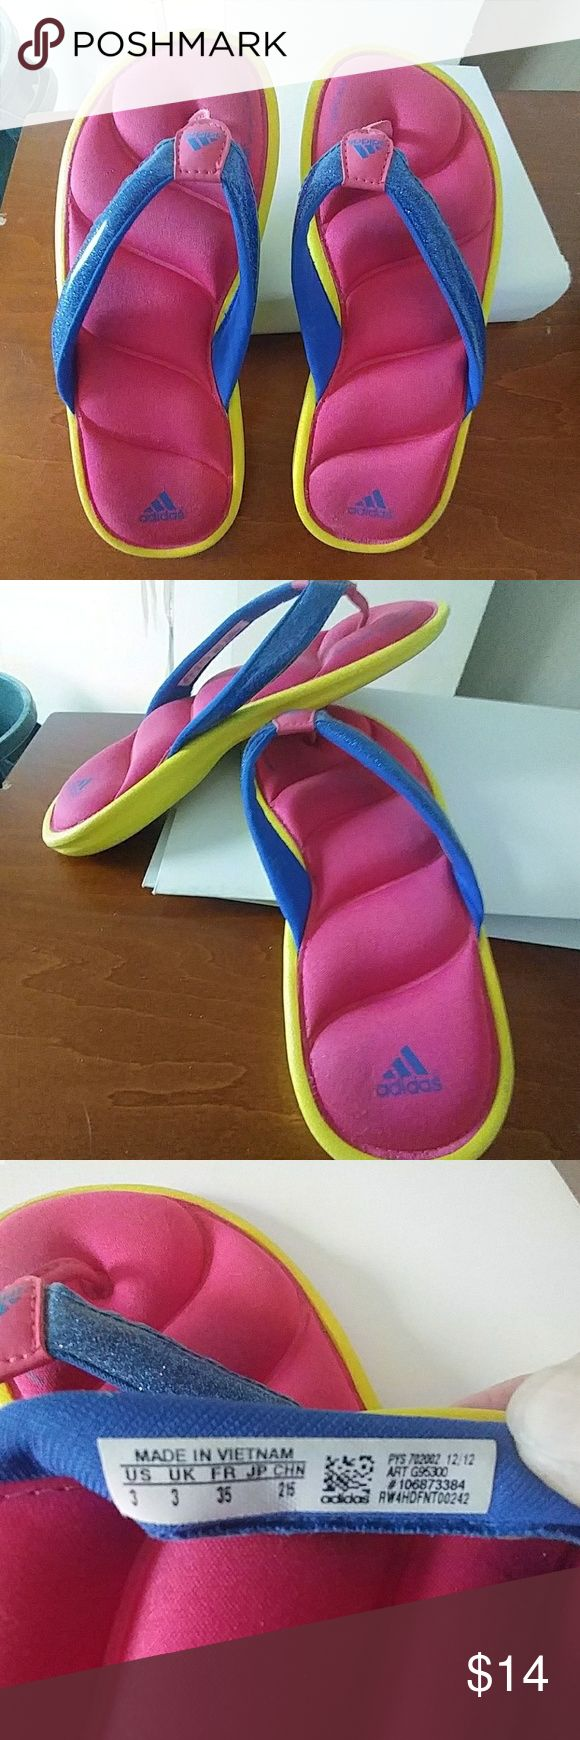 f407ccd31a52 Buy memory foam sandals adidas   OFF49% Discounted